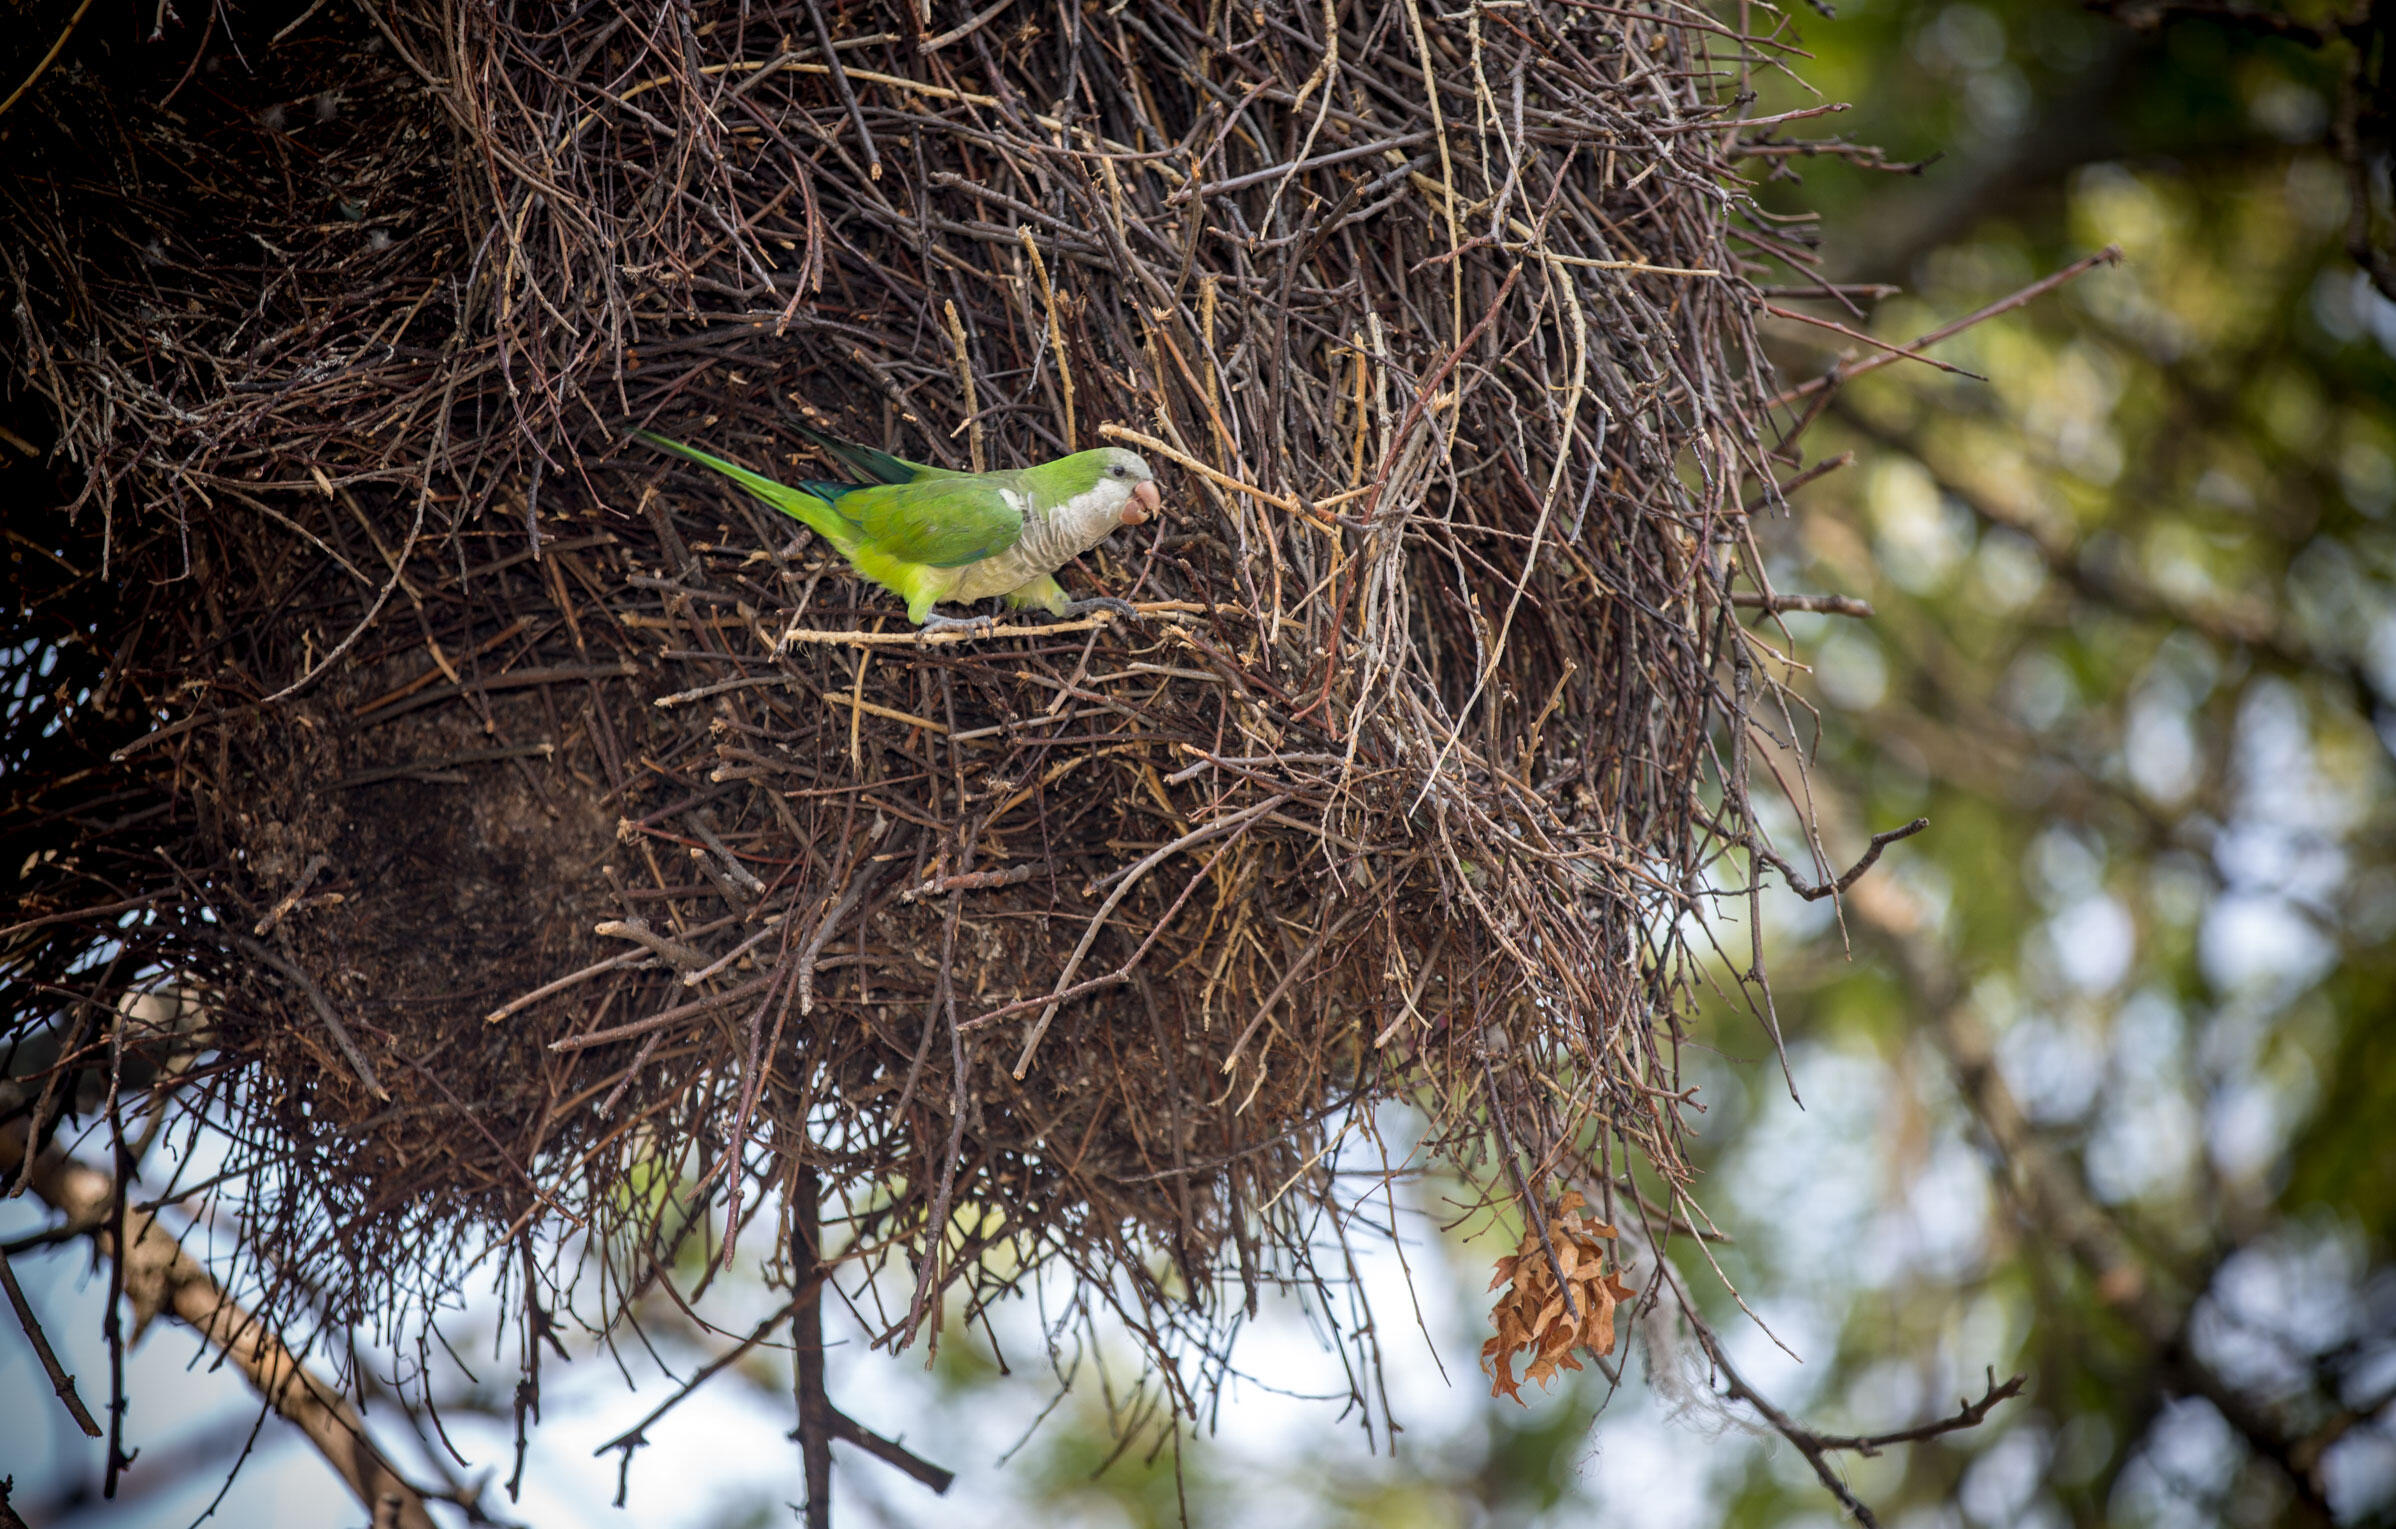 Monk Parakeets, like this Brooklyn resident, construct bulky, communal nests from branches, often lining internal tunnels with feathers. Inside they raise young, sleep at night, and stay warm even through frigid New York winters. Camilla Cerea/Audubon